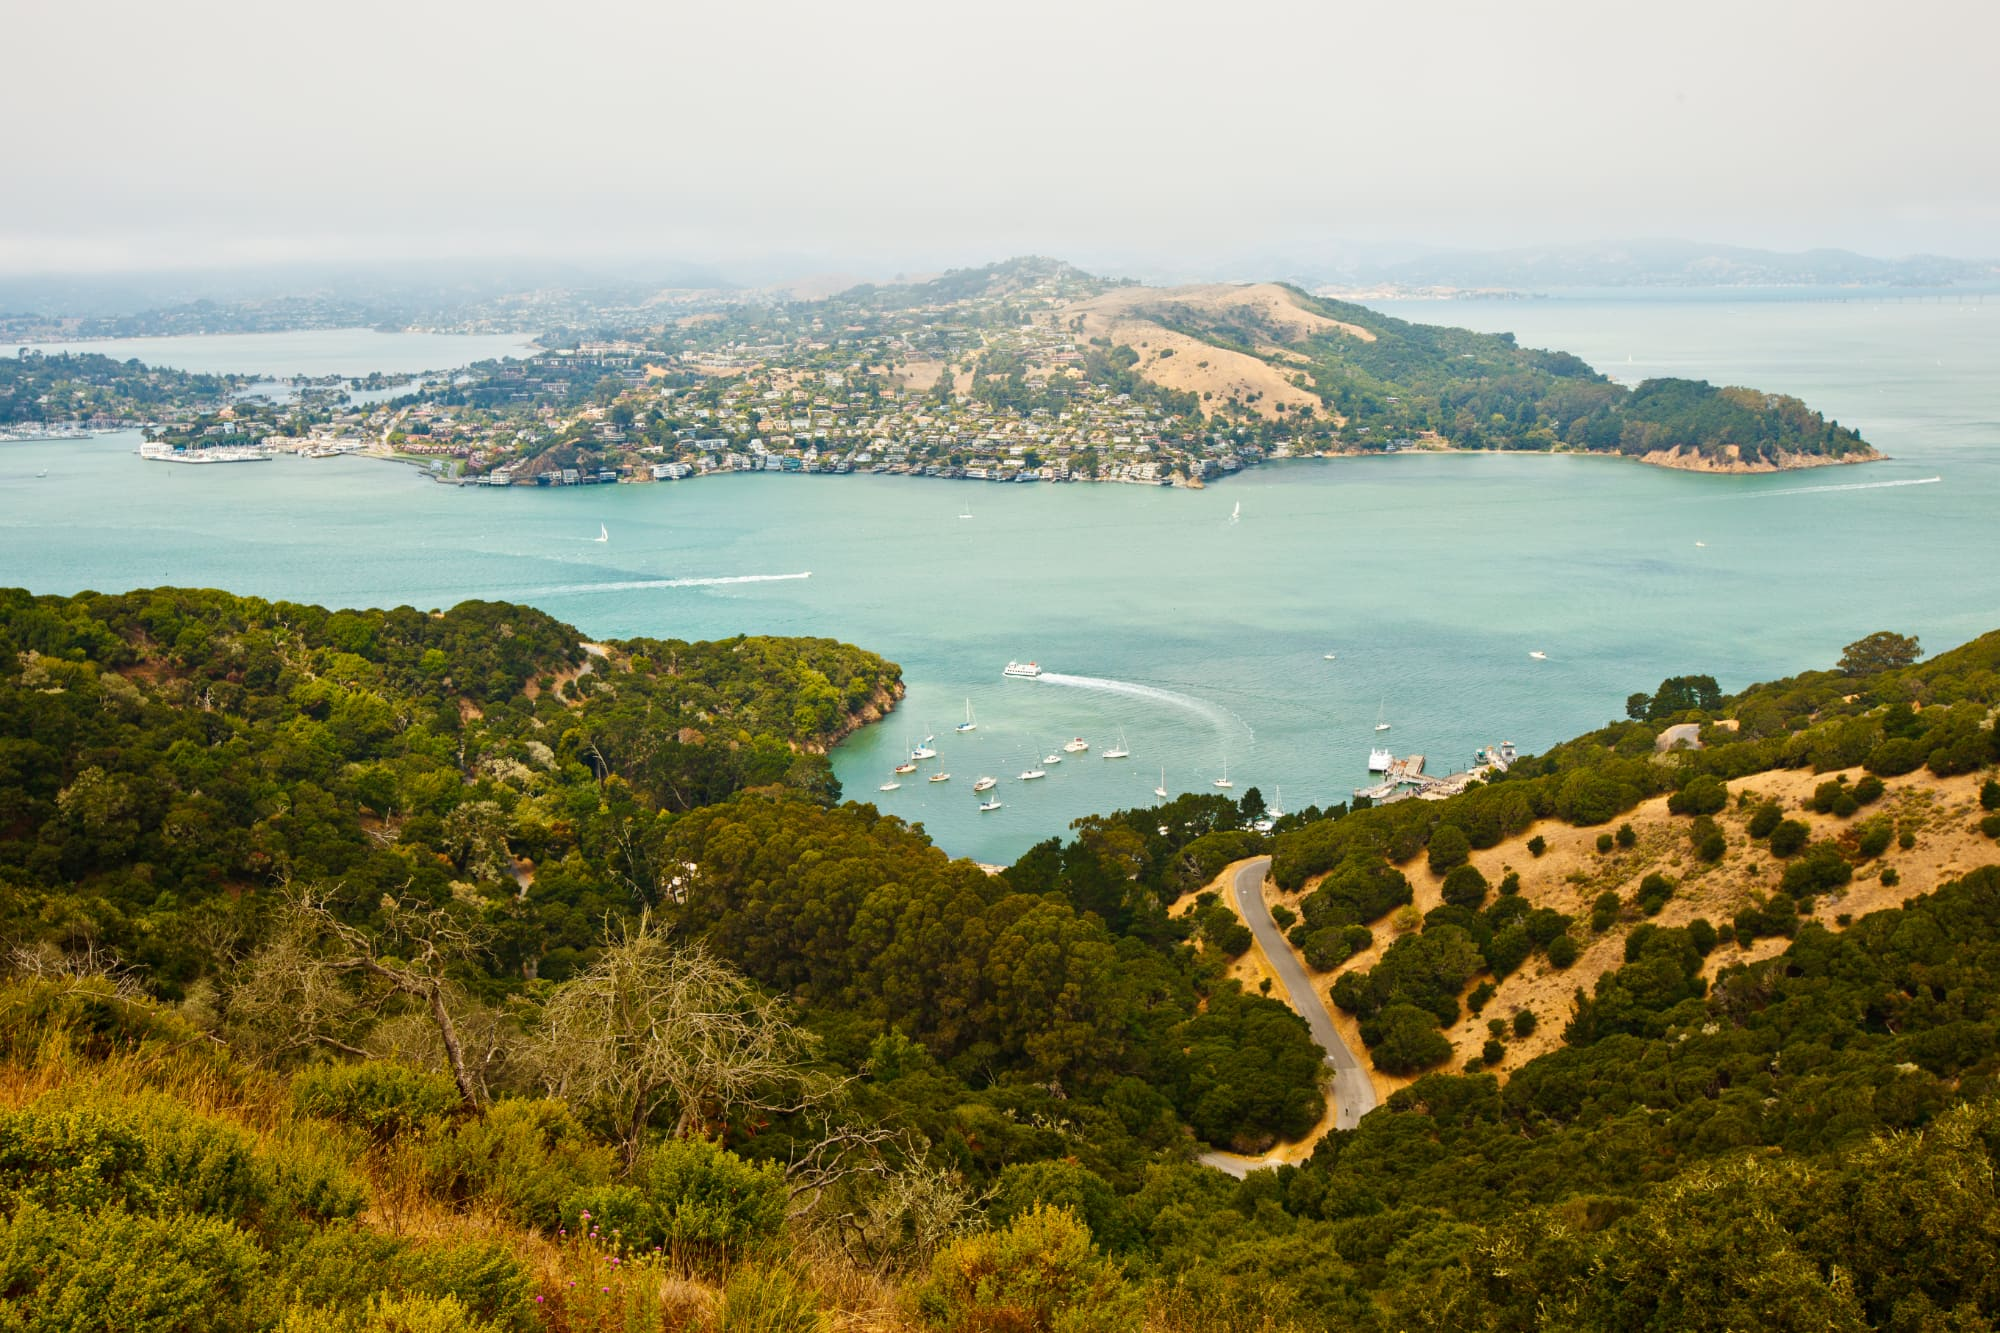 a view of brush, rocks and a winding road on Angel Island overlooking the San Francisco Bay